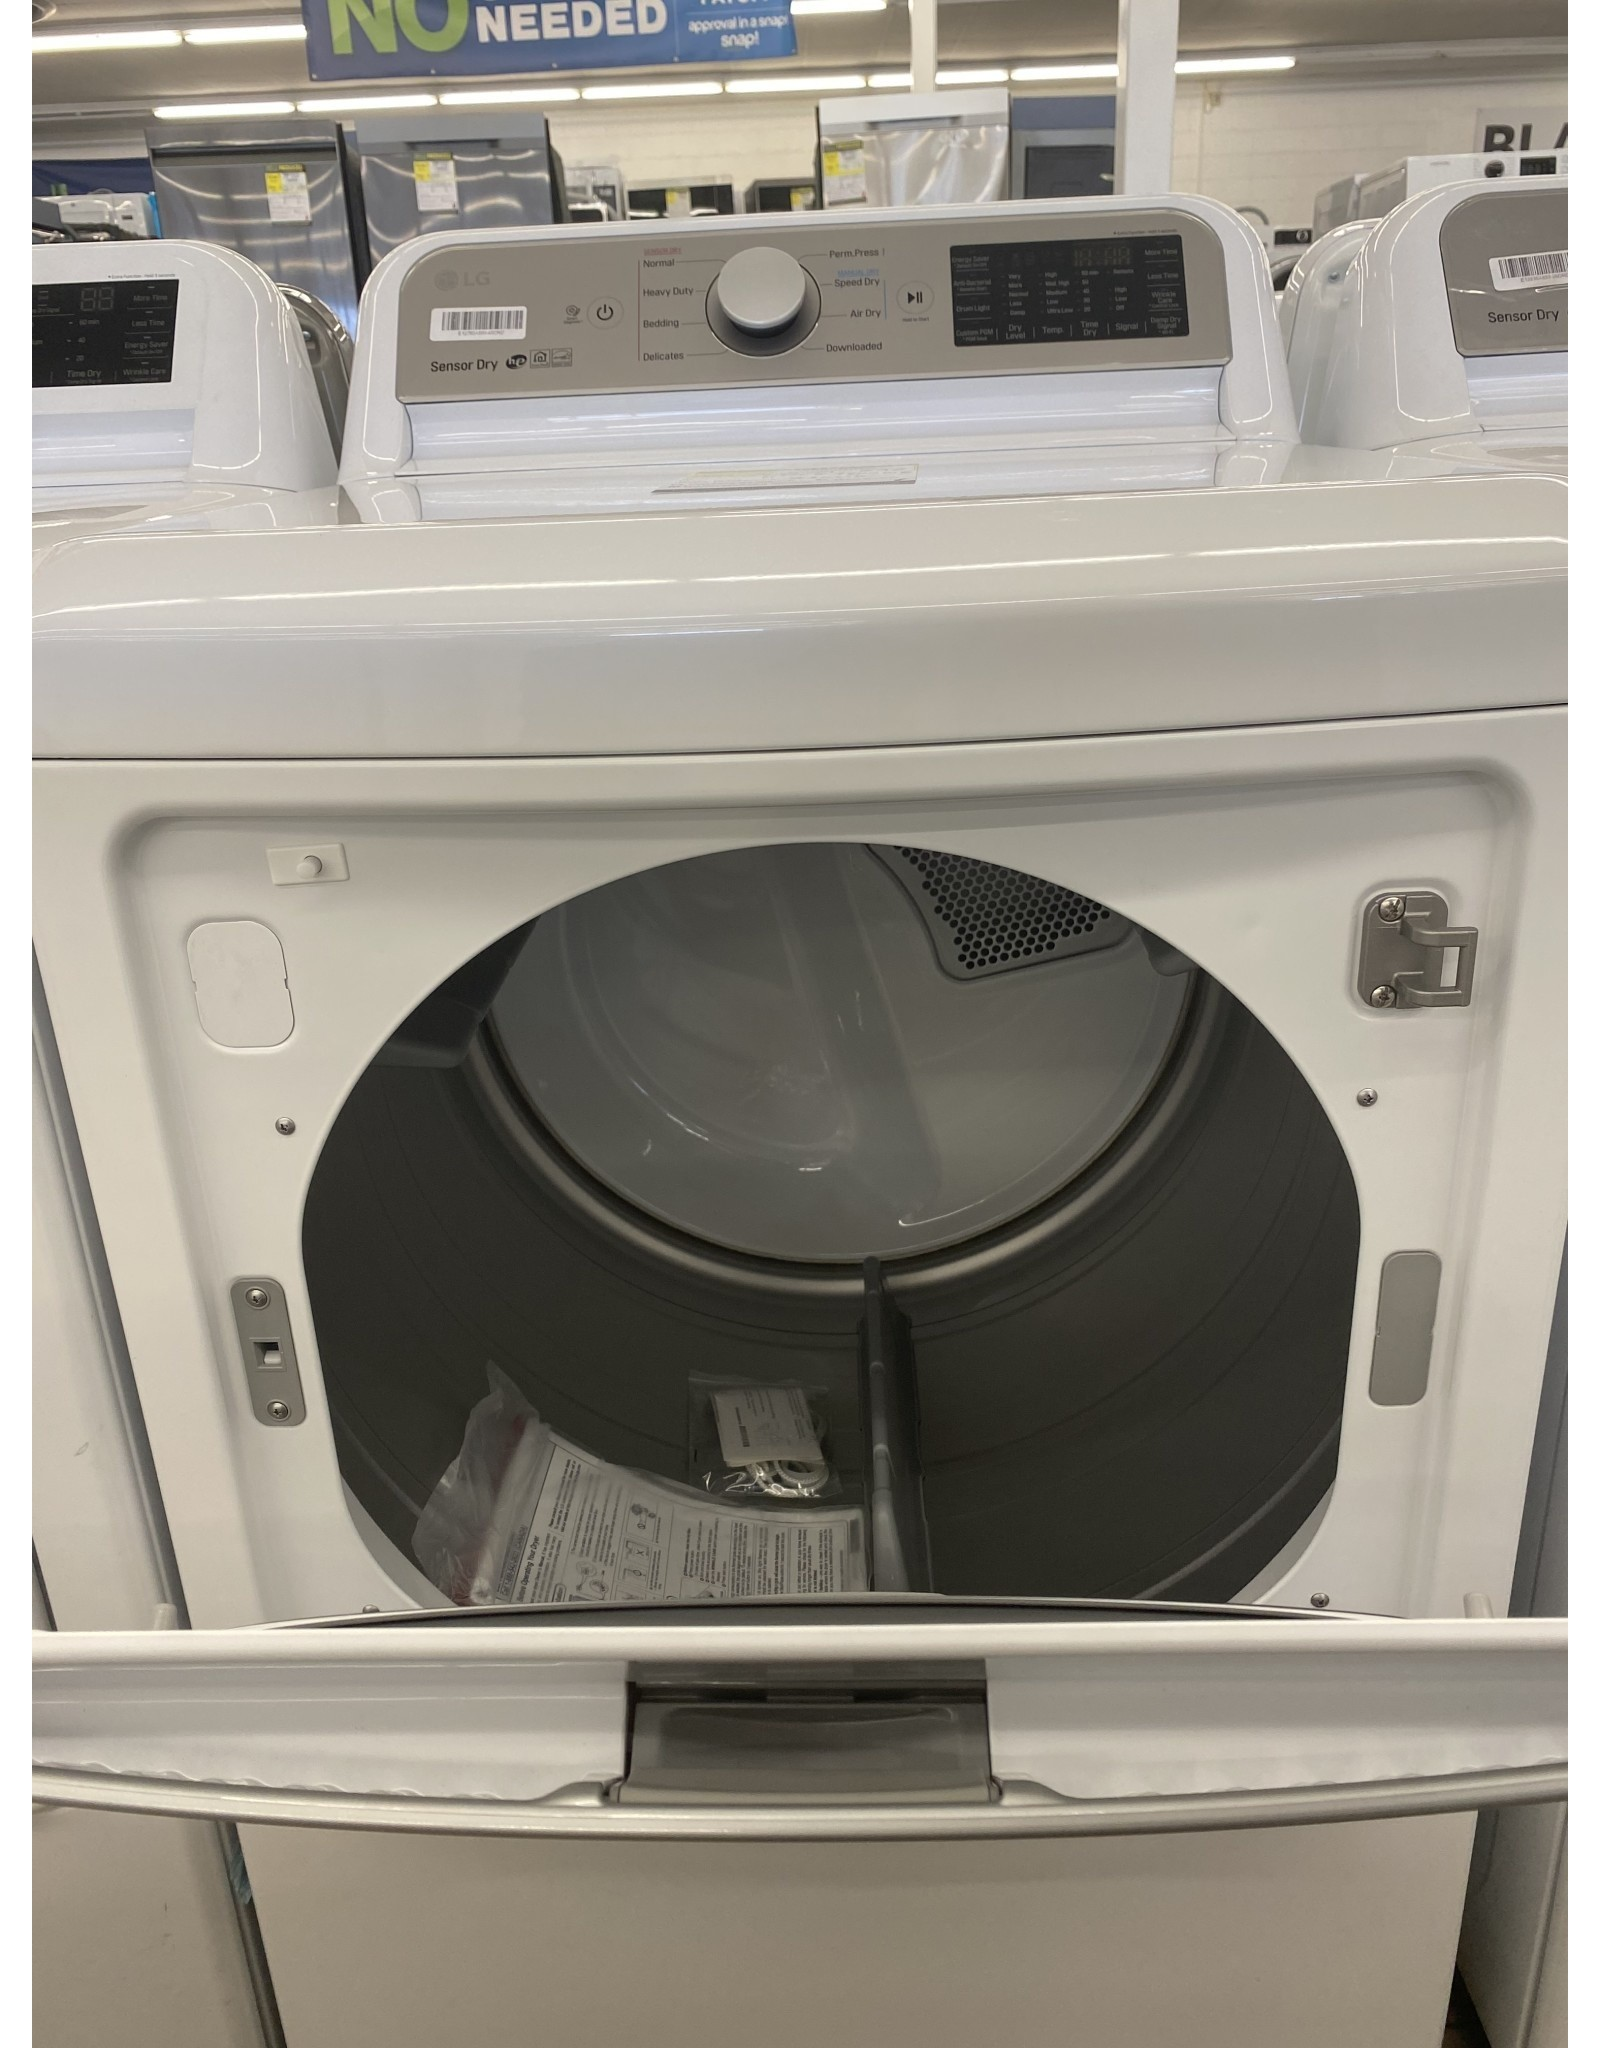 LG Electronics DLE7300WE 7.3 cu. ft. Ultra Large Smart Front Load Electric Vented Dryer with EasyLoad Door and Sensor Dry in White, ENERGY STAR